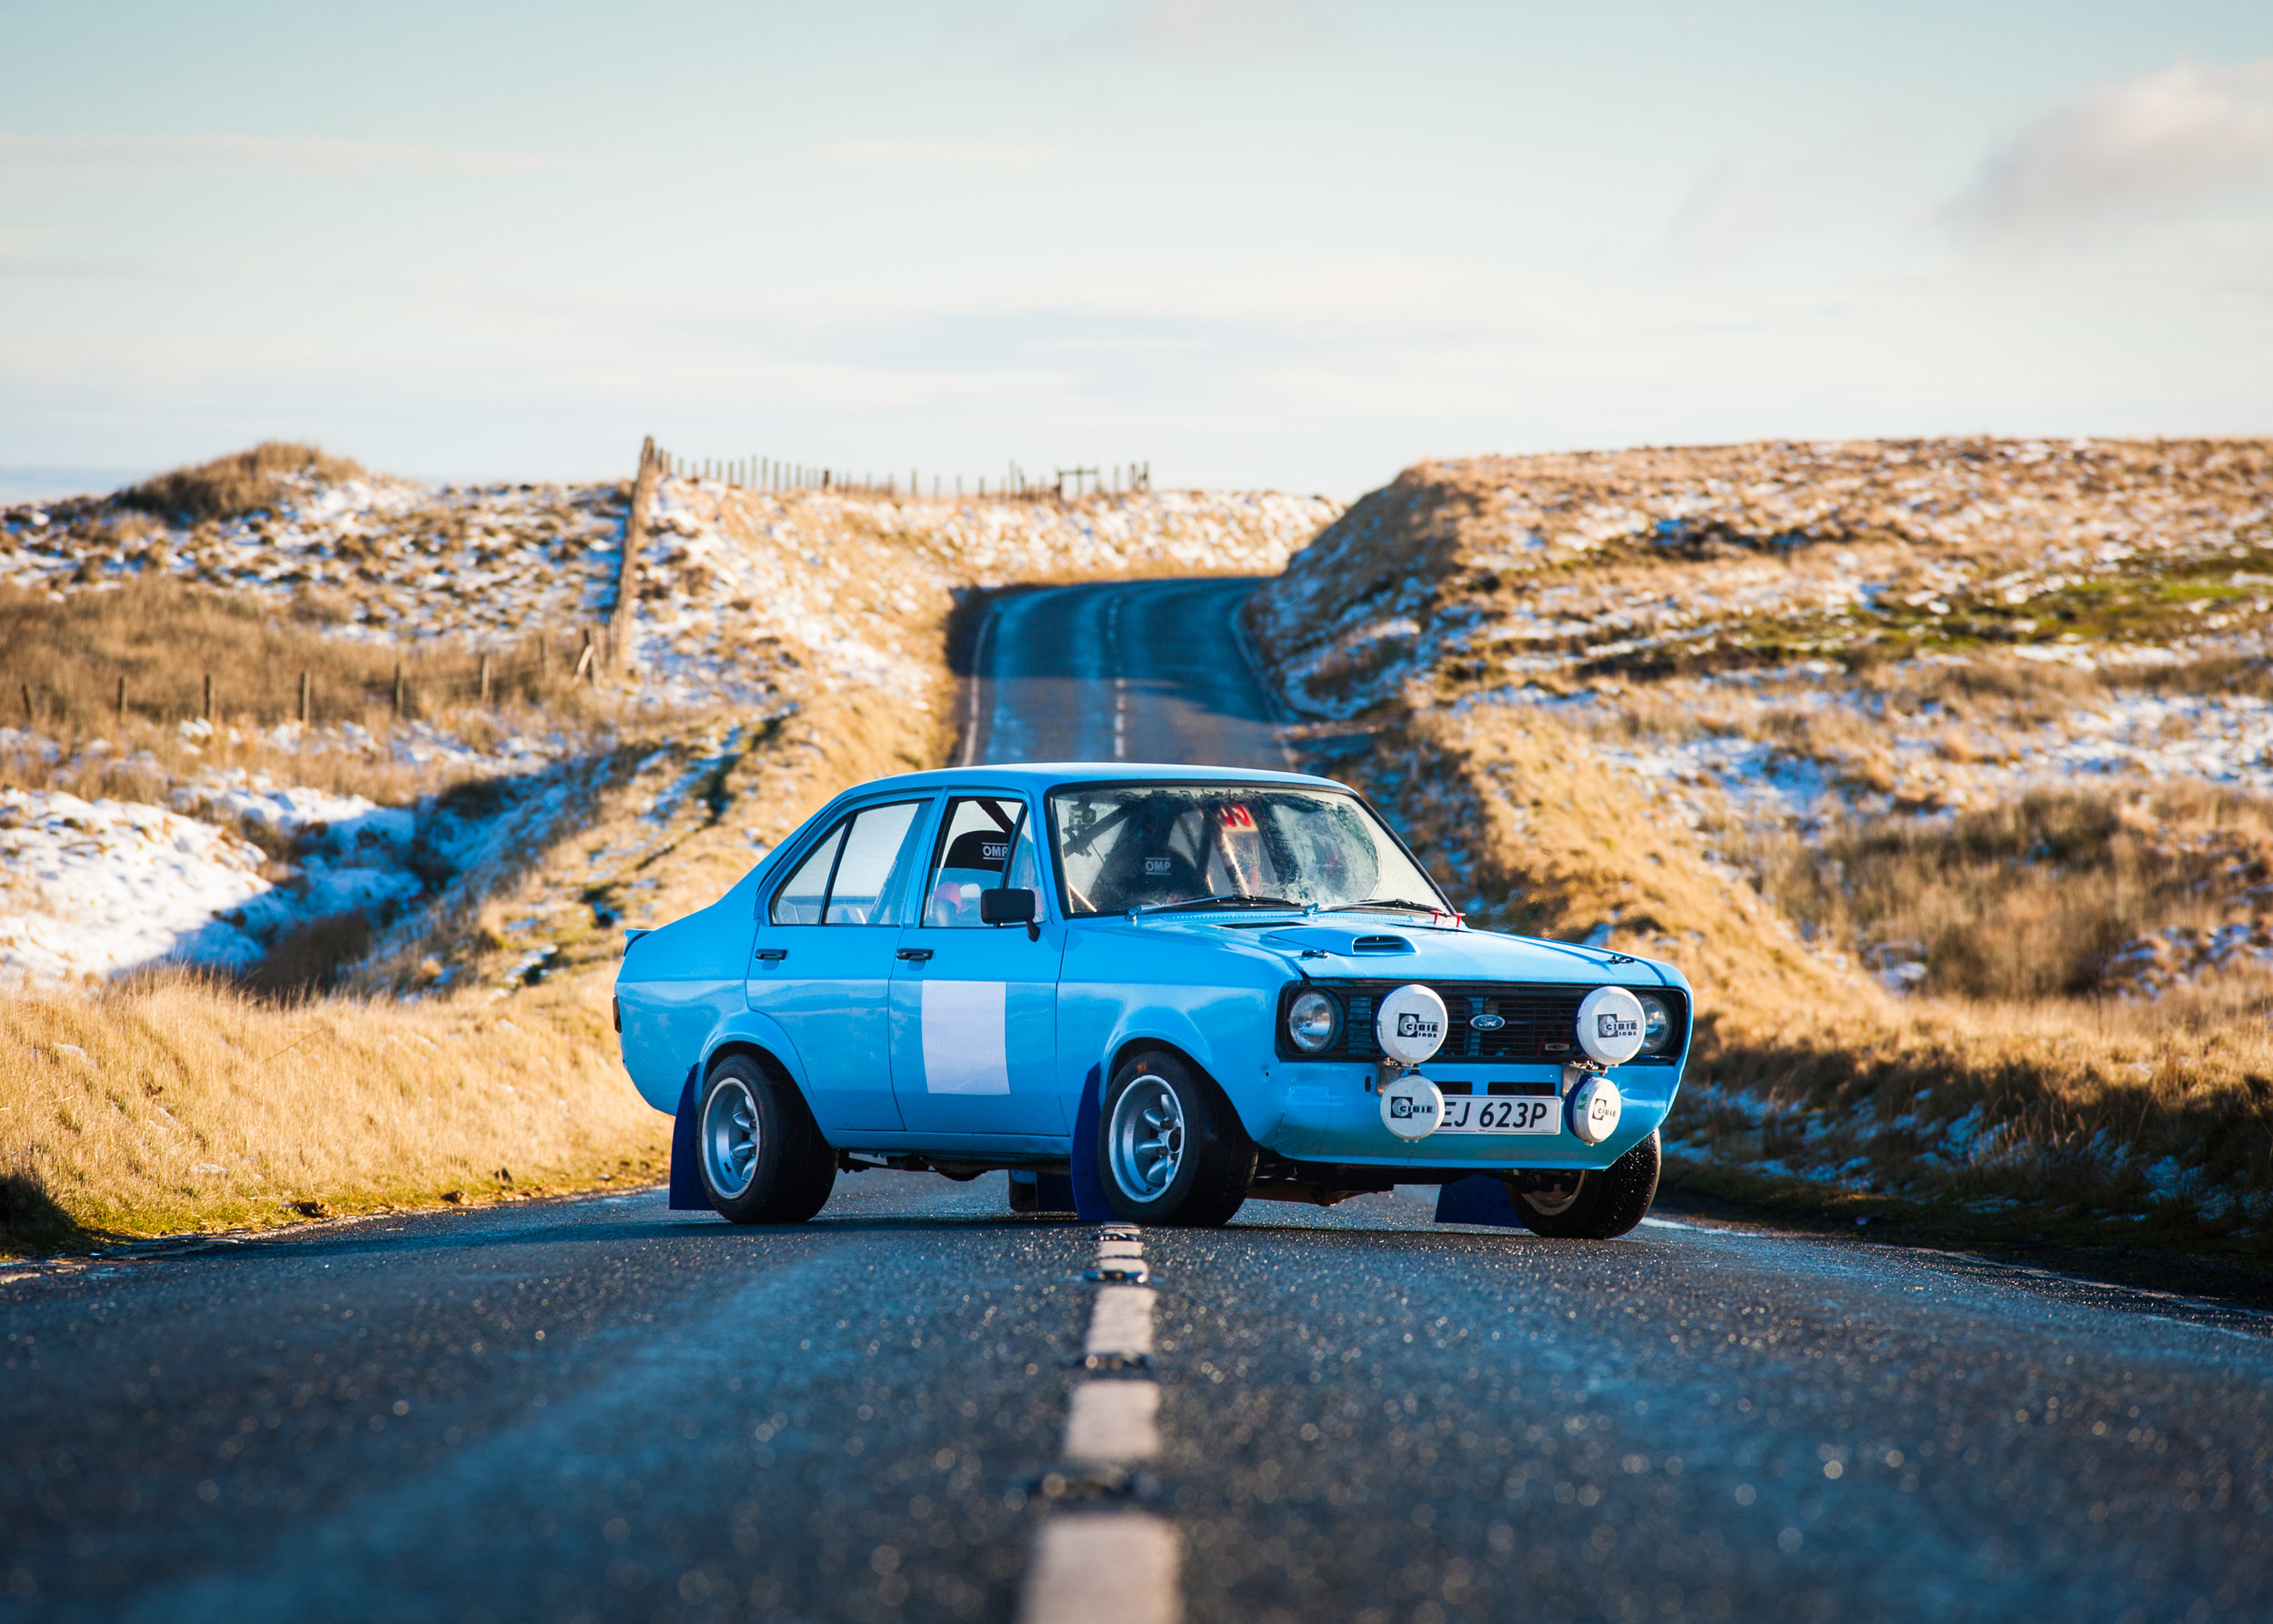 set in the beautiful welsh valleys, the escort looks right at home.